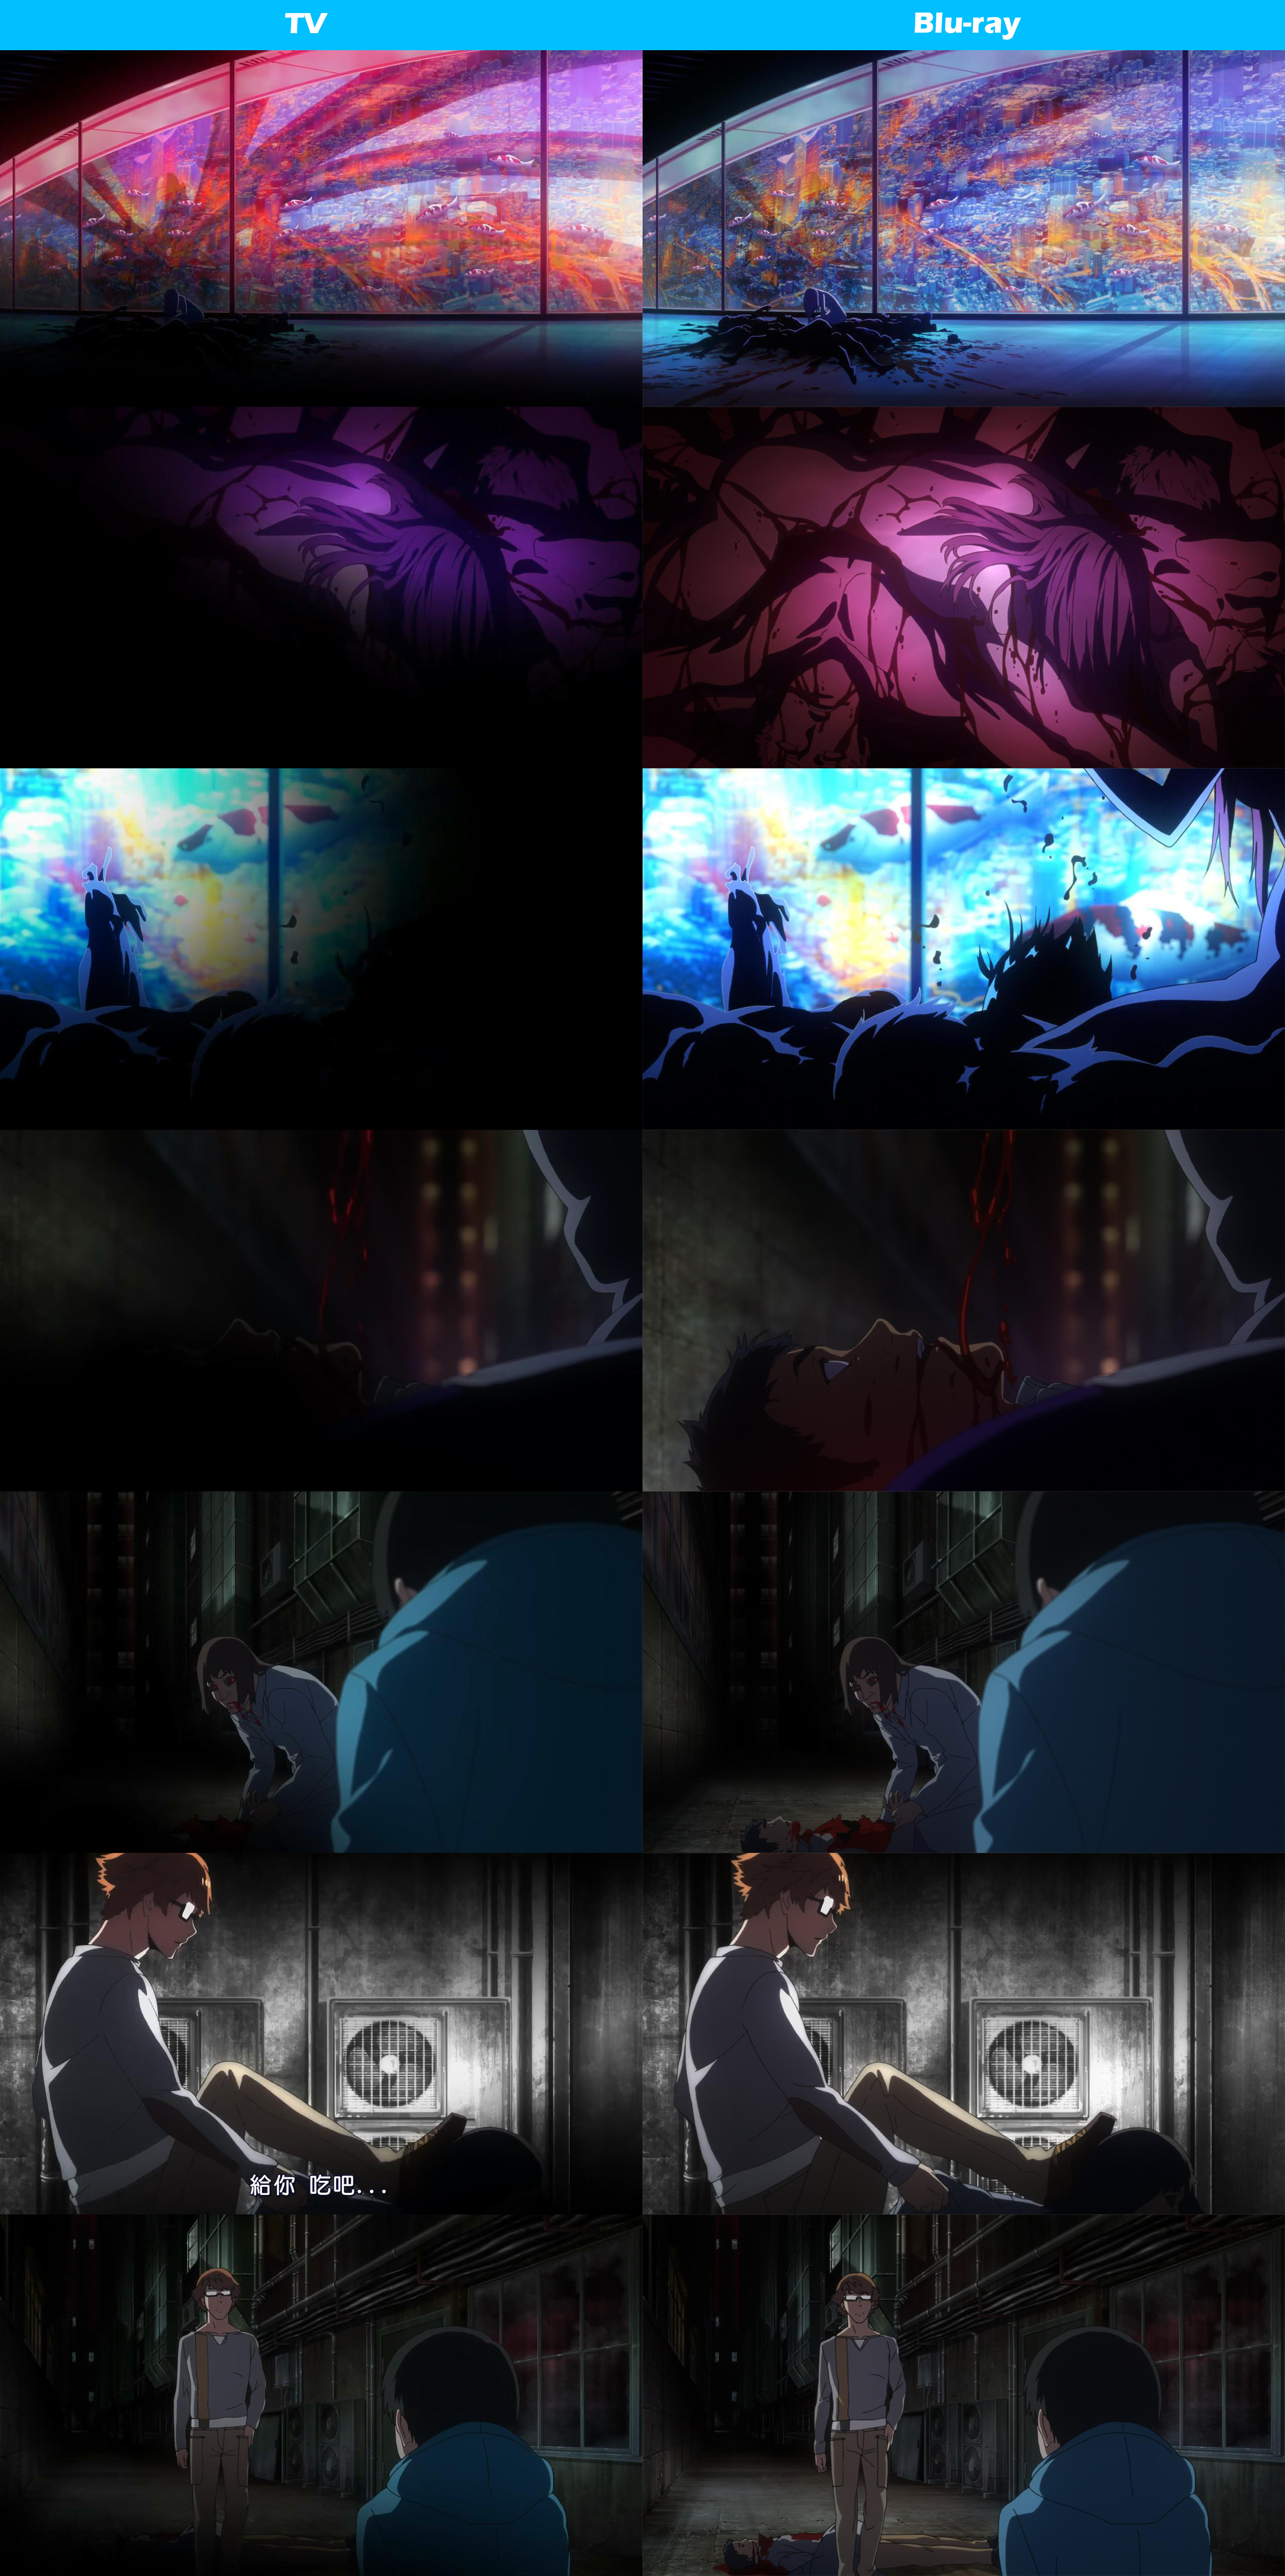 Tokyo-Ghoul---TV-and-Blu-ray-Comparison-Image-1